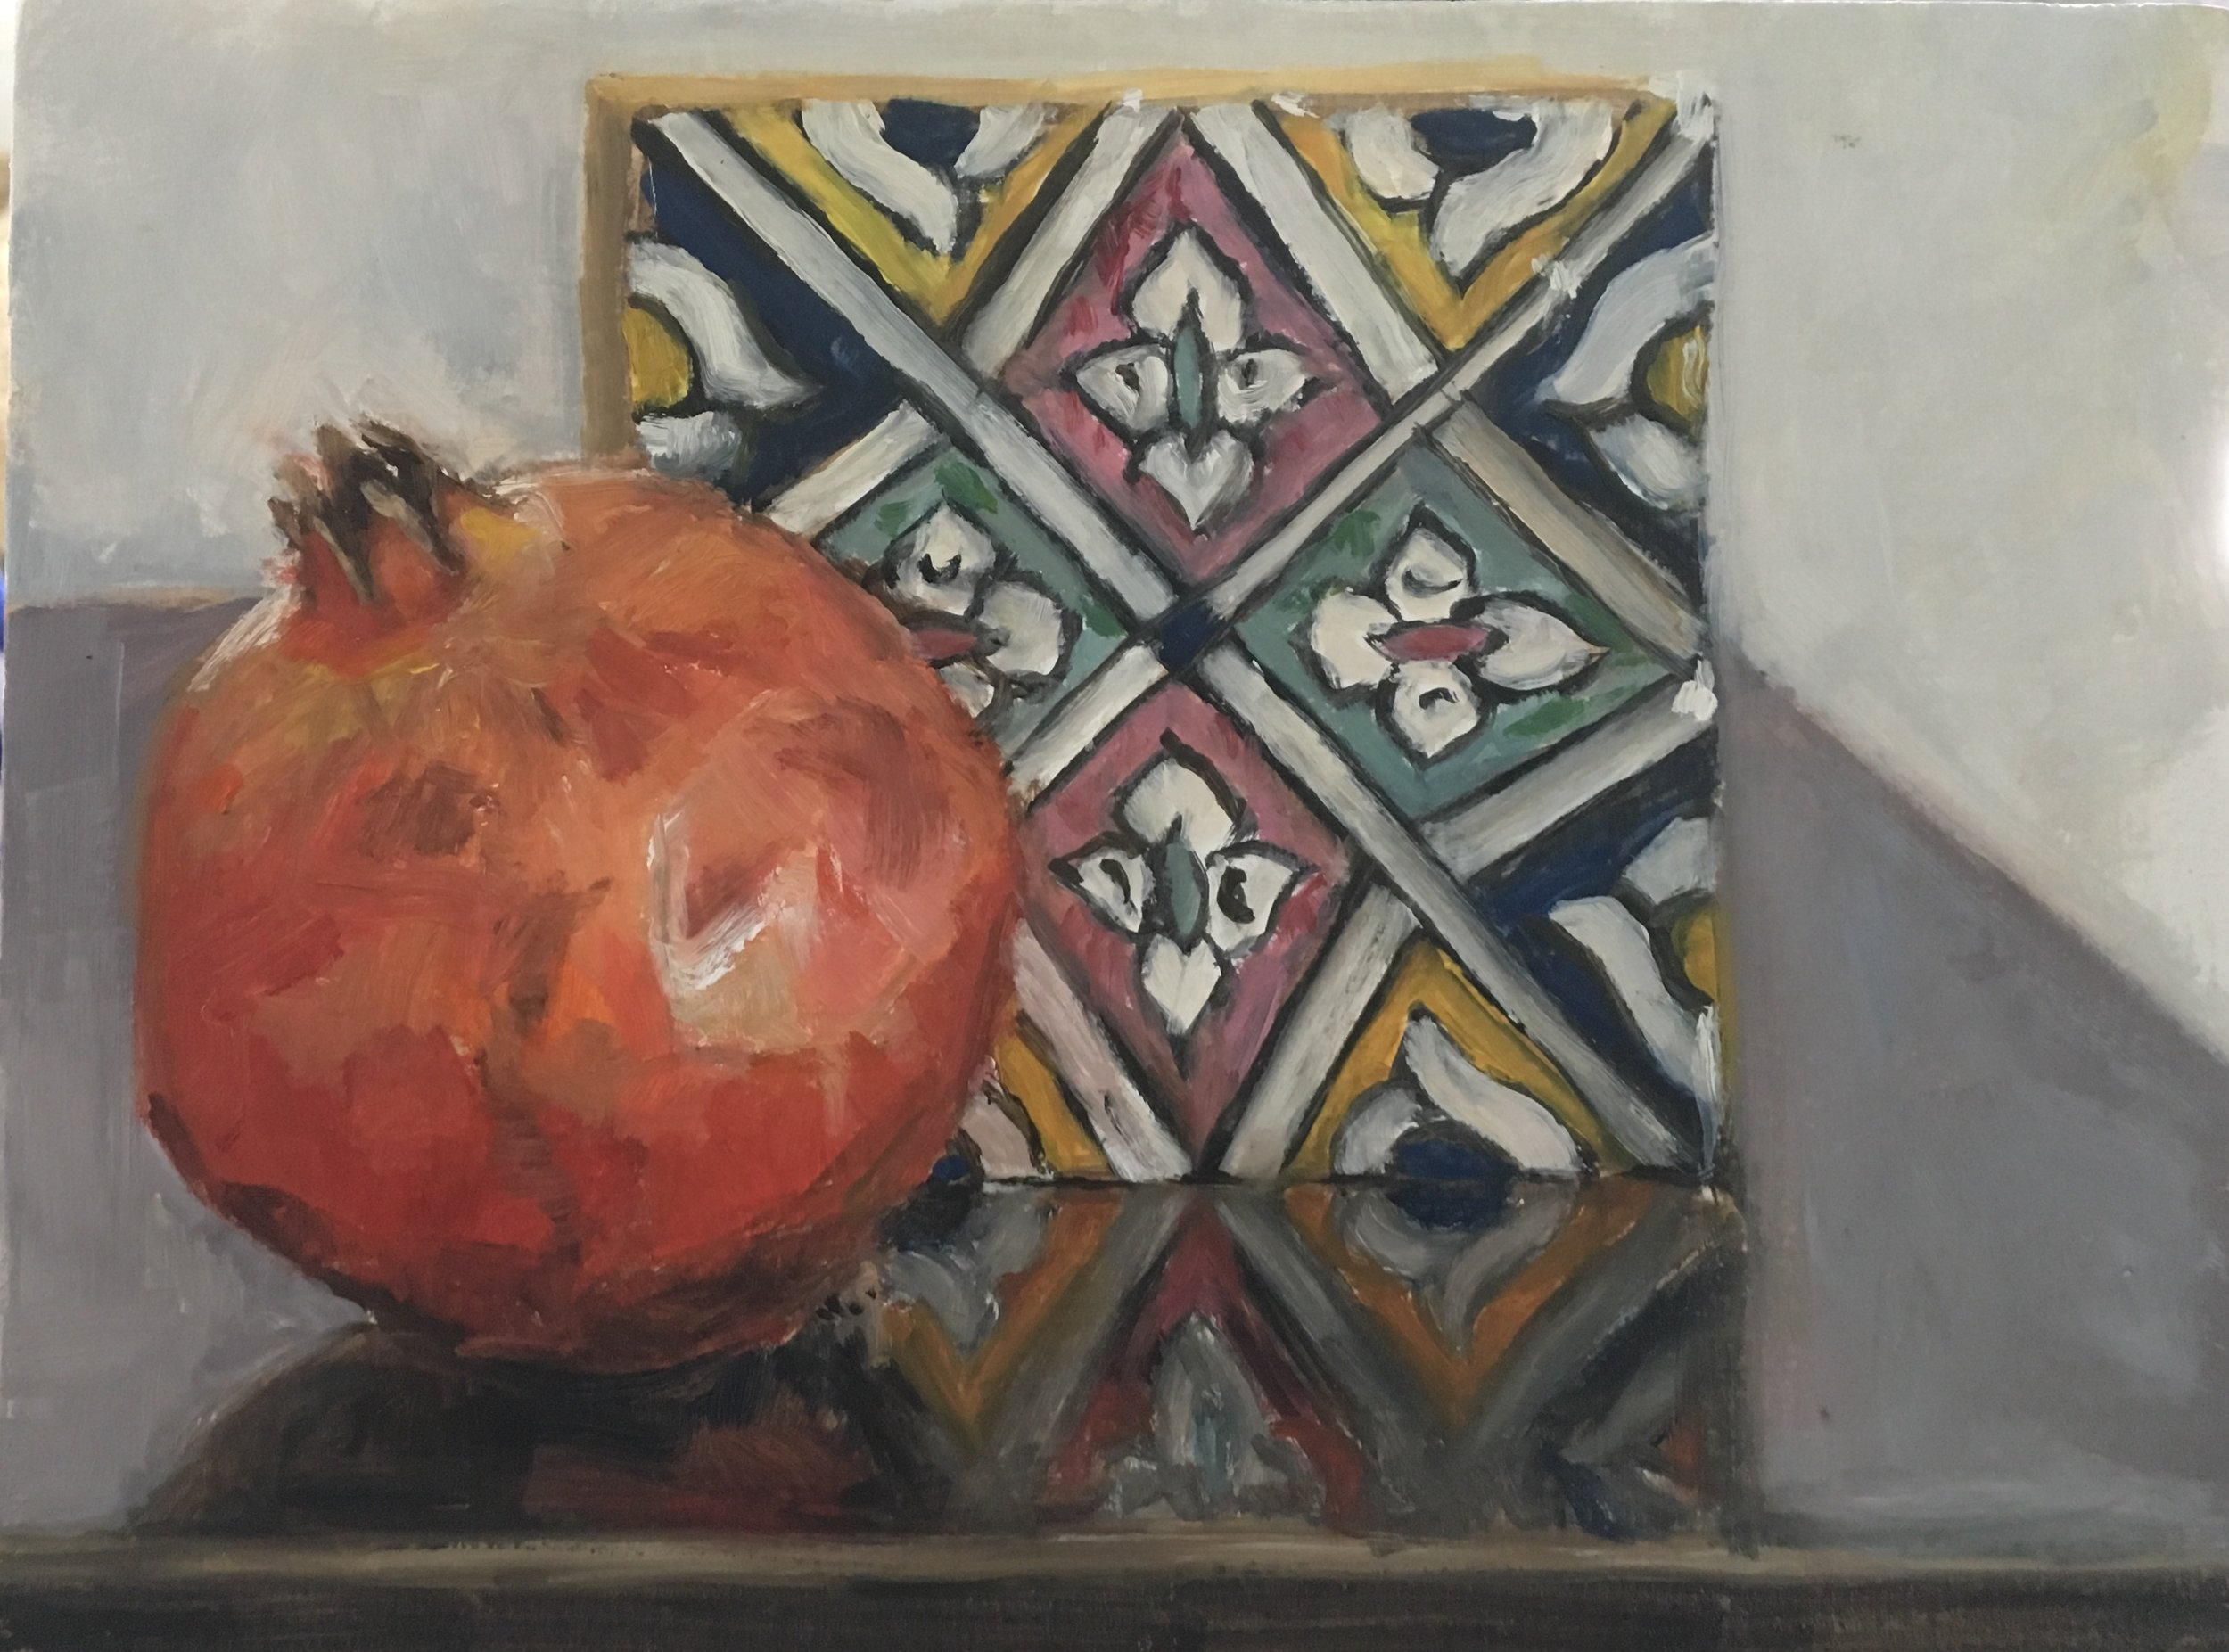 Pomegranate with Turkish Tile  Oil on timber panel  6 x 8 inches  Available